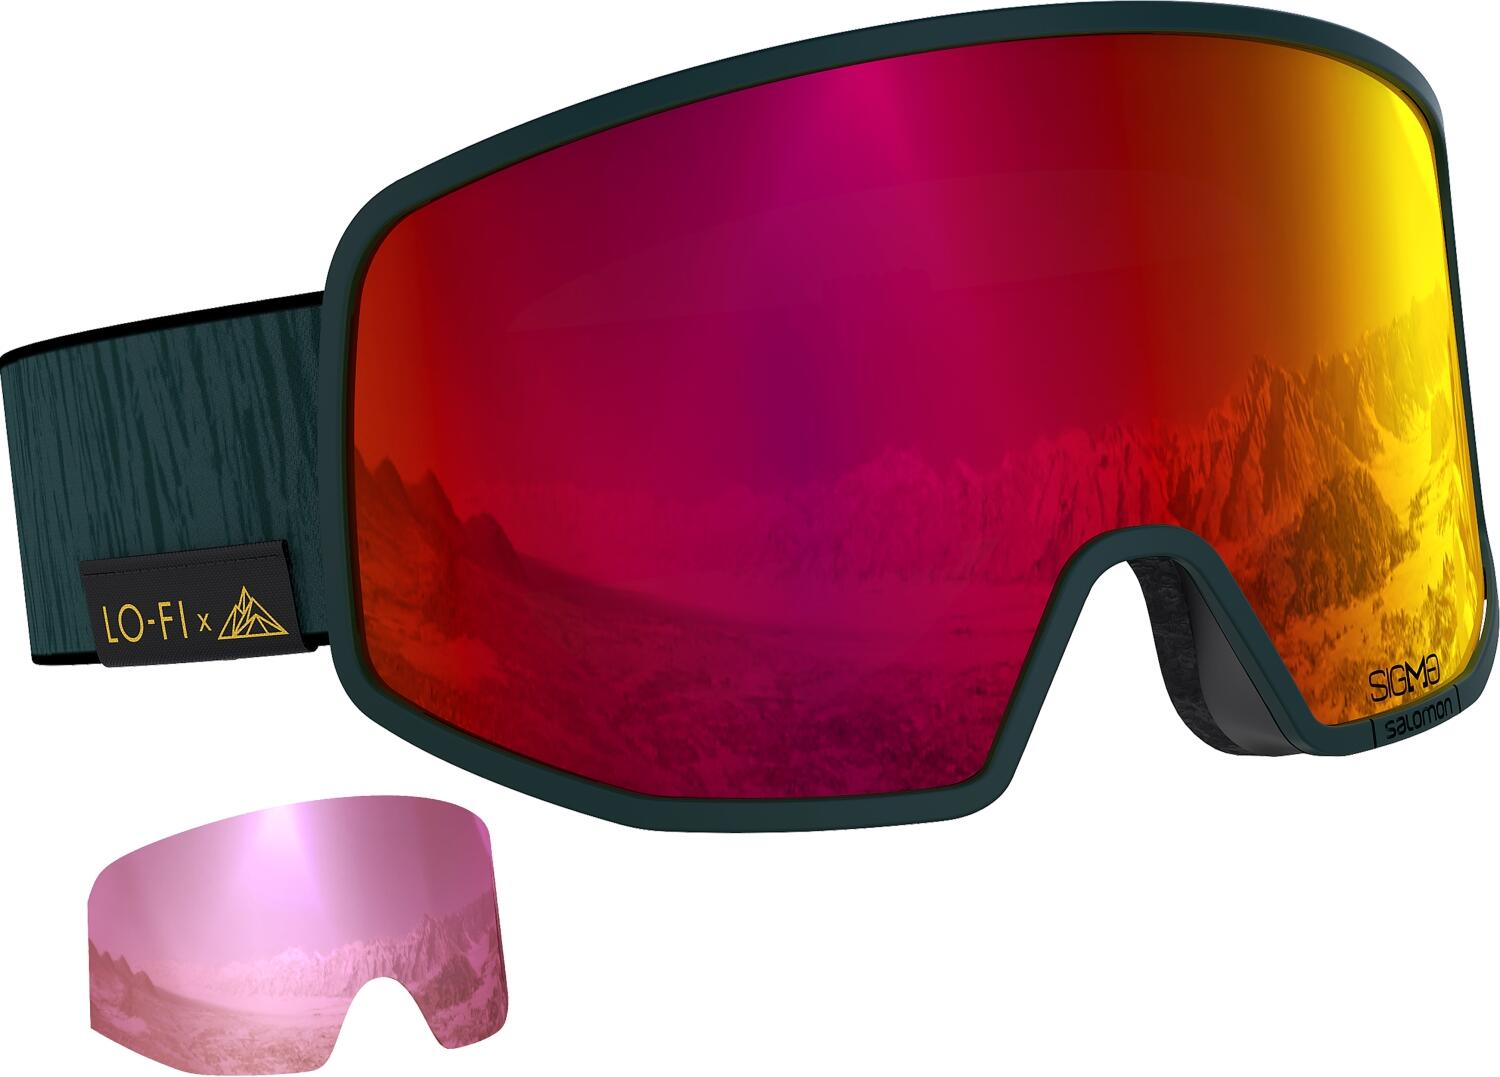 salomon-lo-fi-sigma-skibrille-farbe-green-gables-scheibe-poppy-red-extra-scheibe-silver-pink-